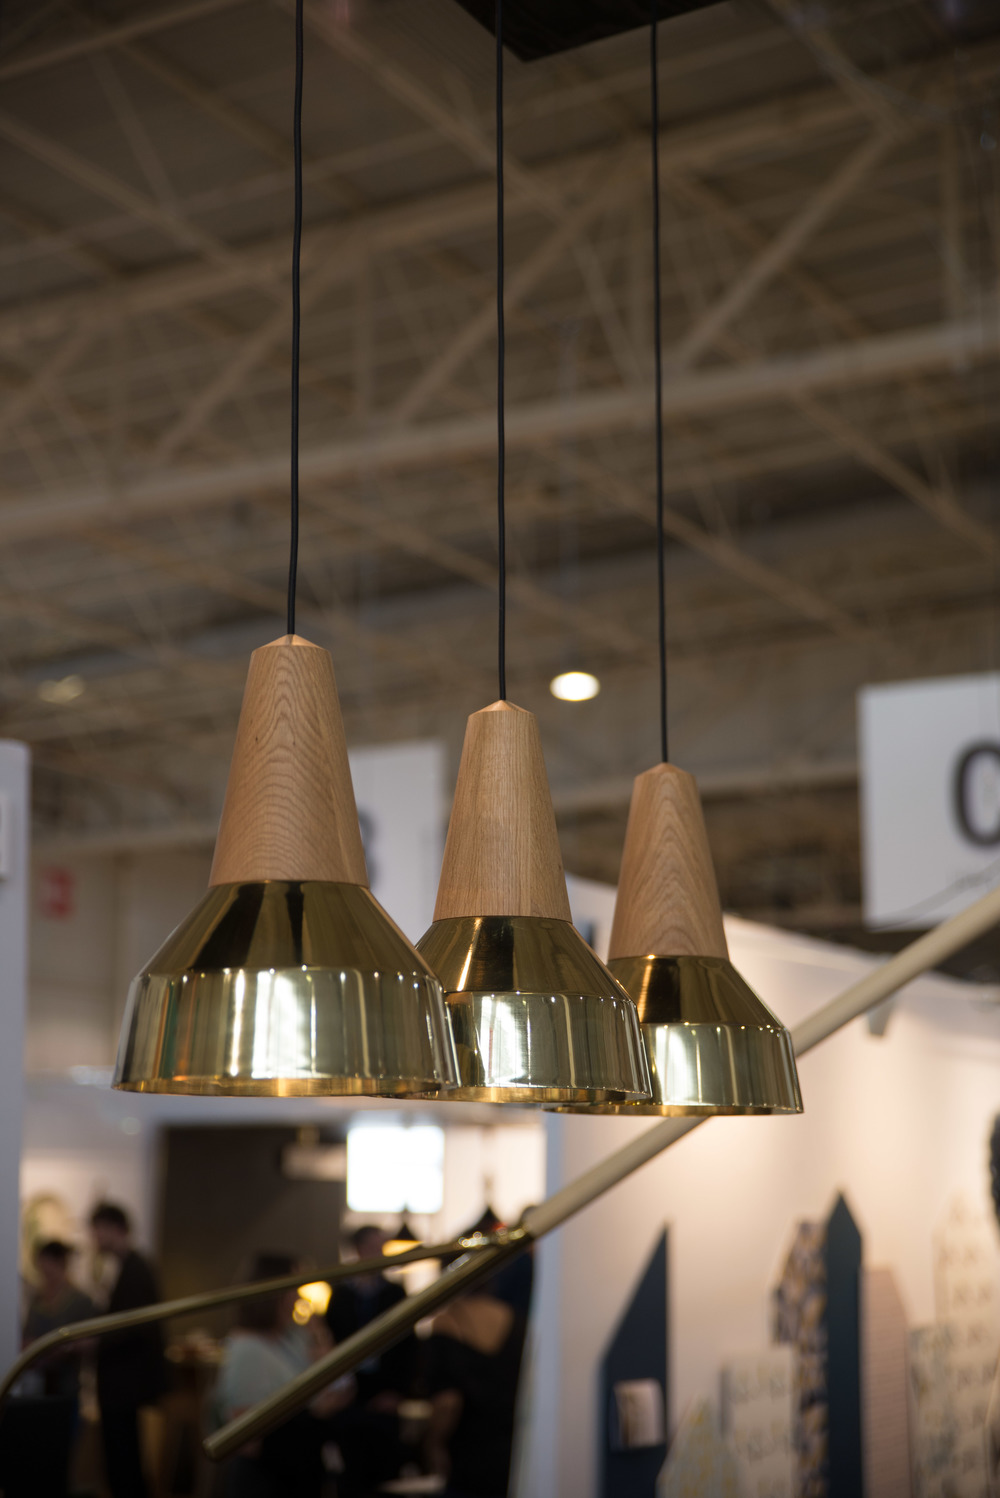 Eikon Ray - Schneid at Maison & Objet Paris